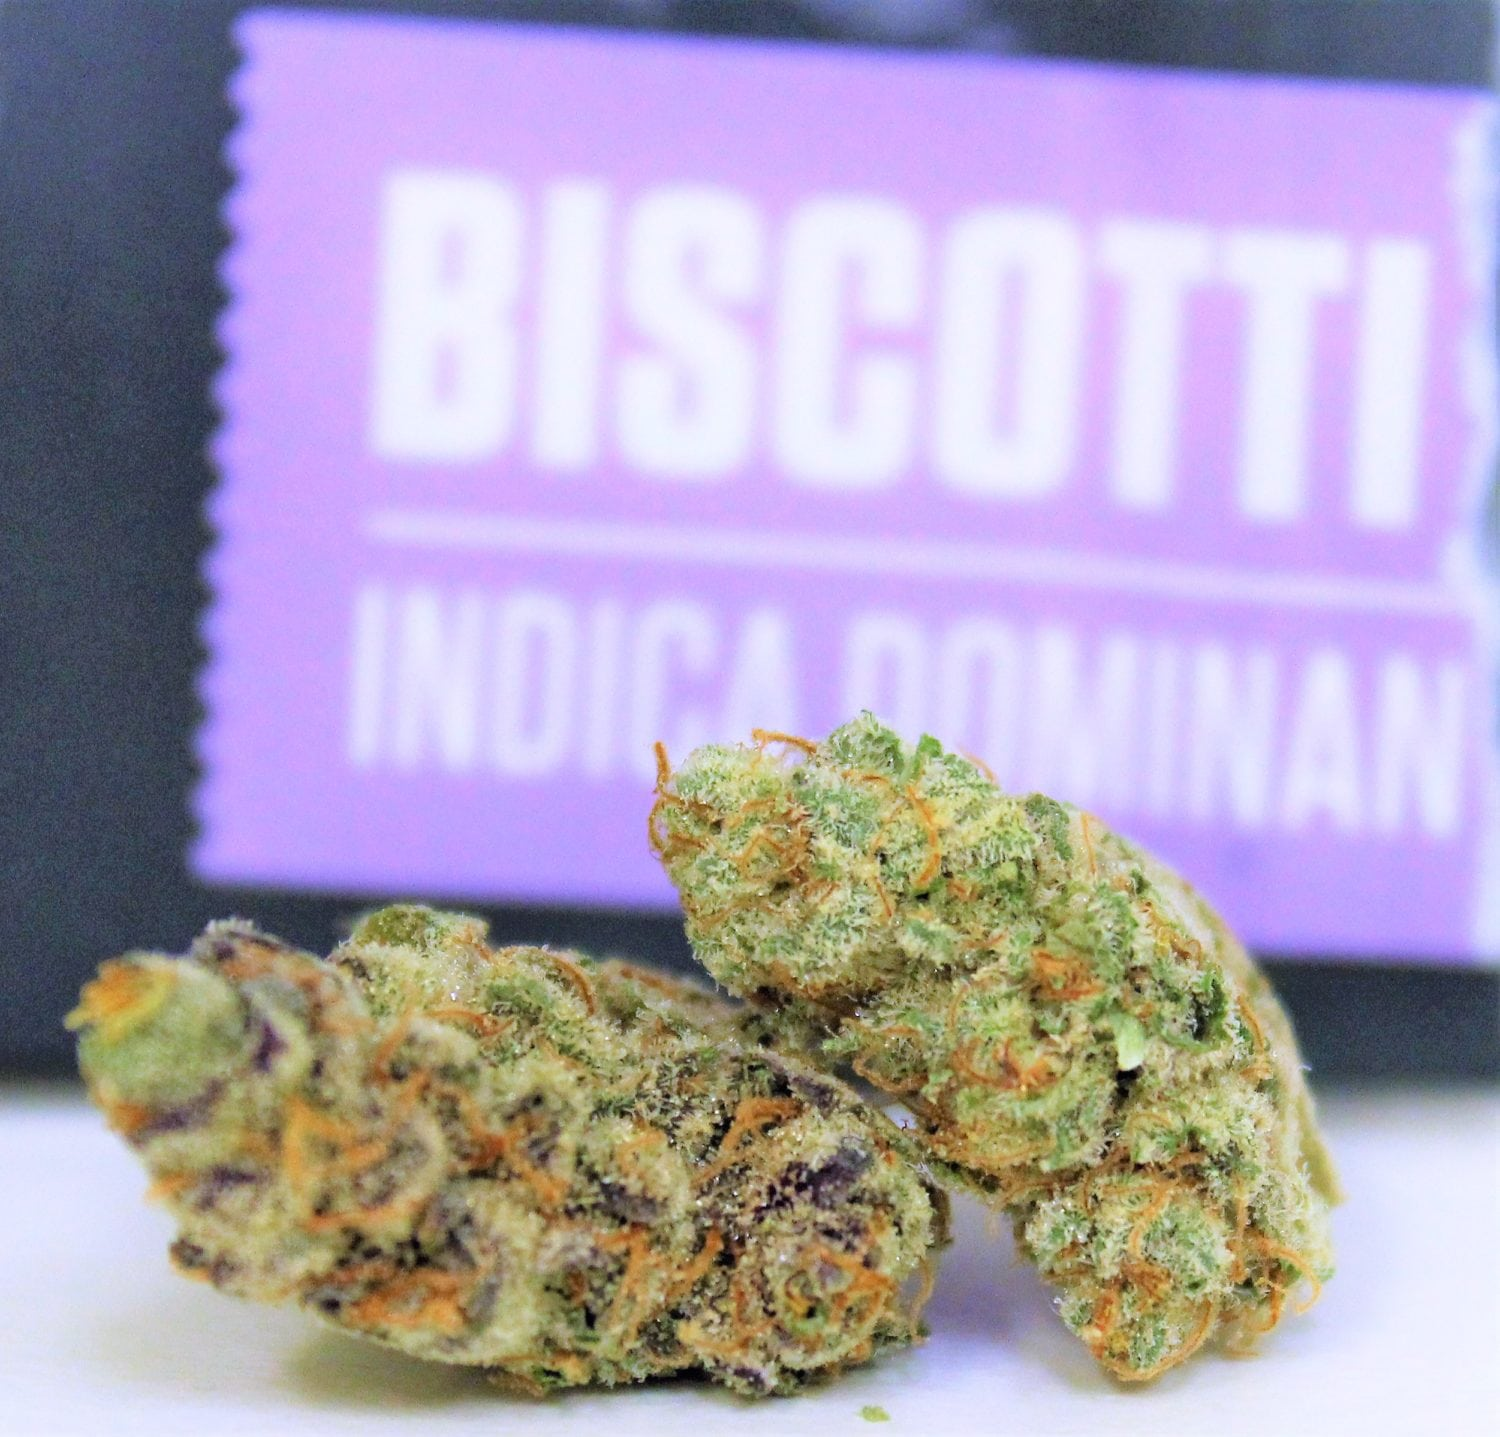 Why Is The Biscotti Strain So Dank? The Genetics Are Very